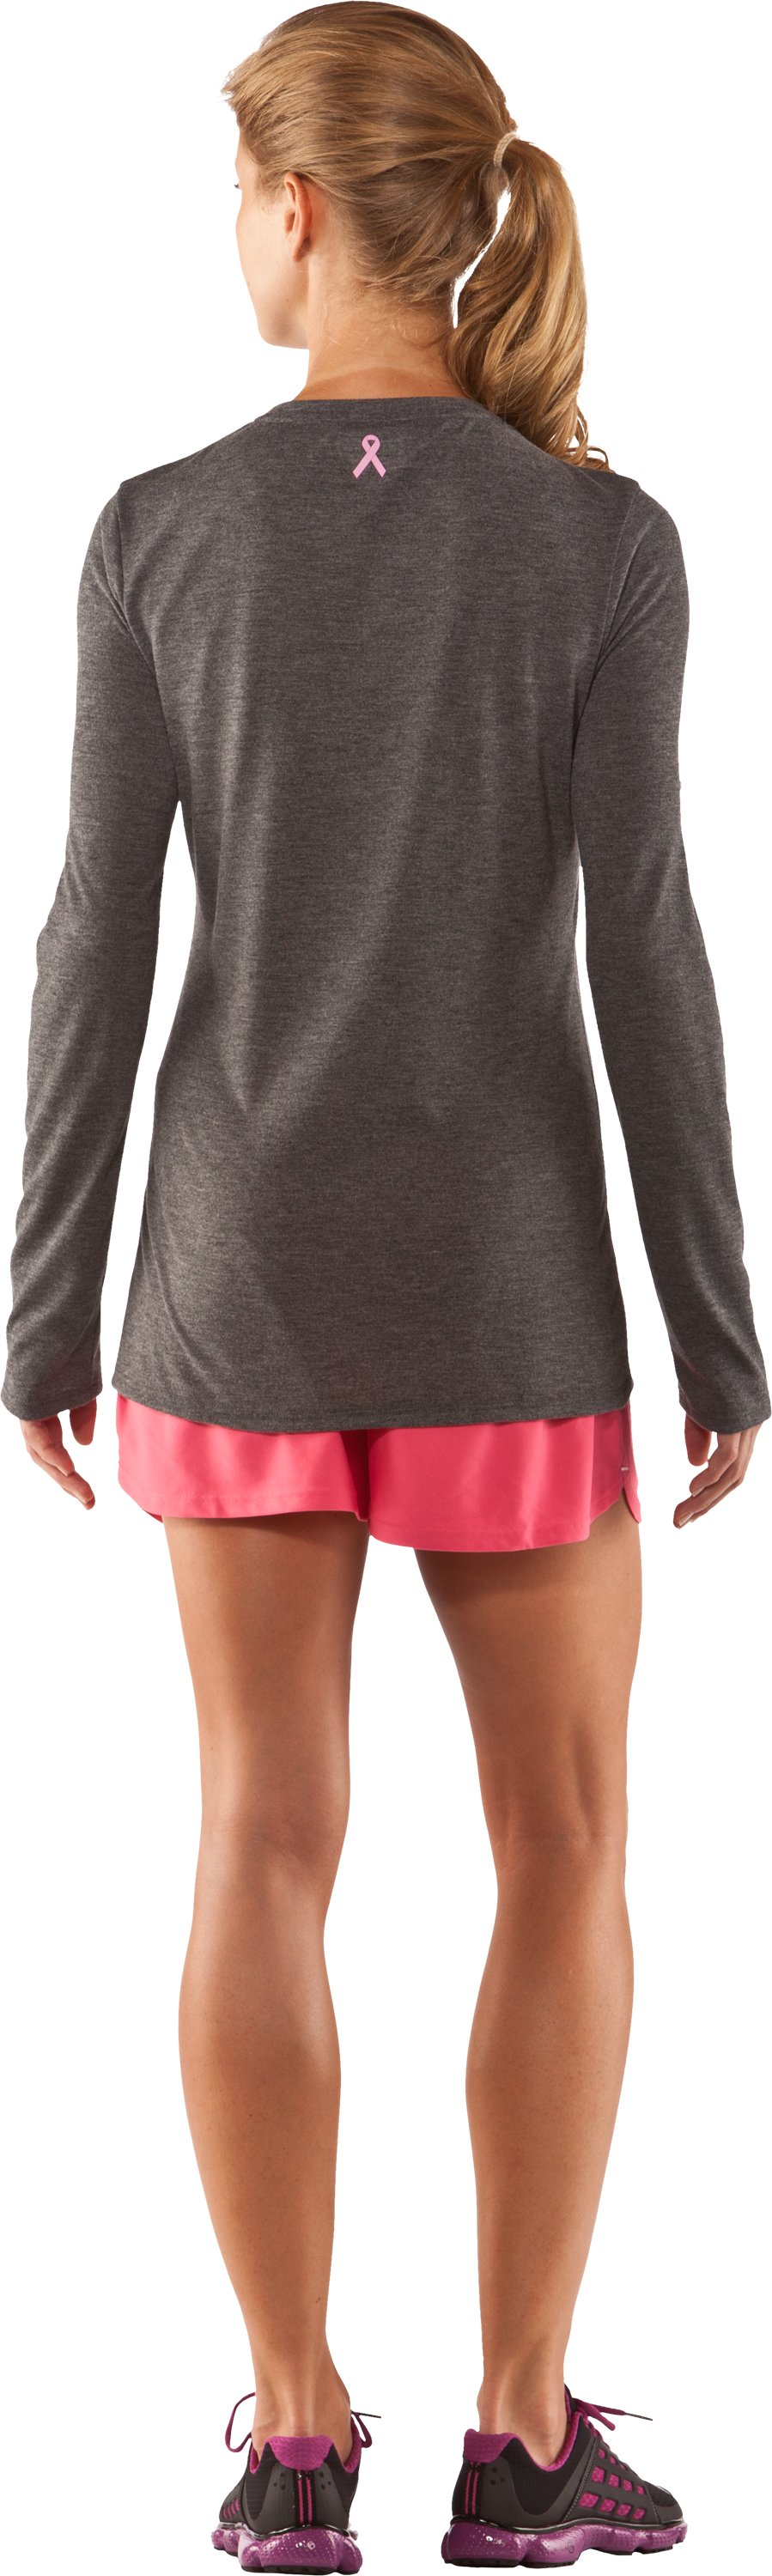 Women's PIP® I Race For Long Sleeve, Carbon Heather, Back